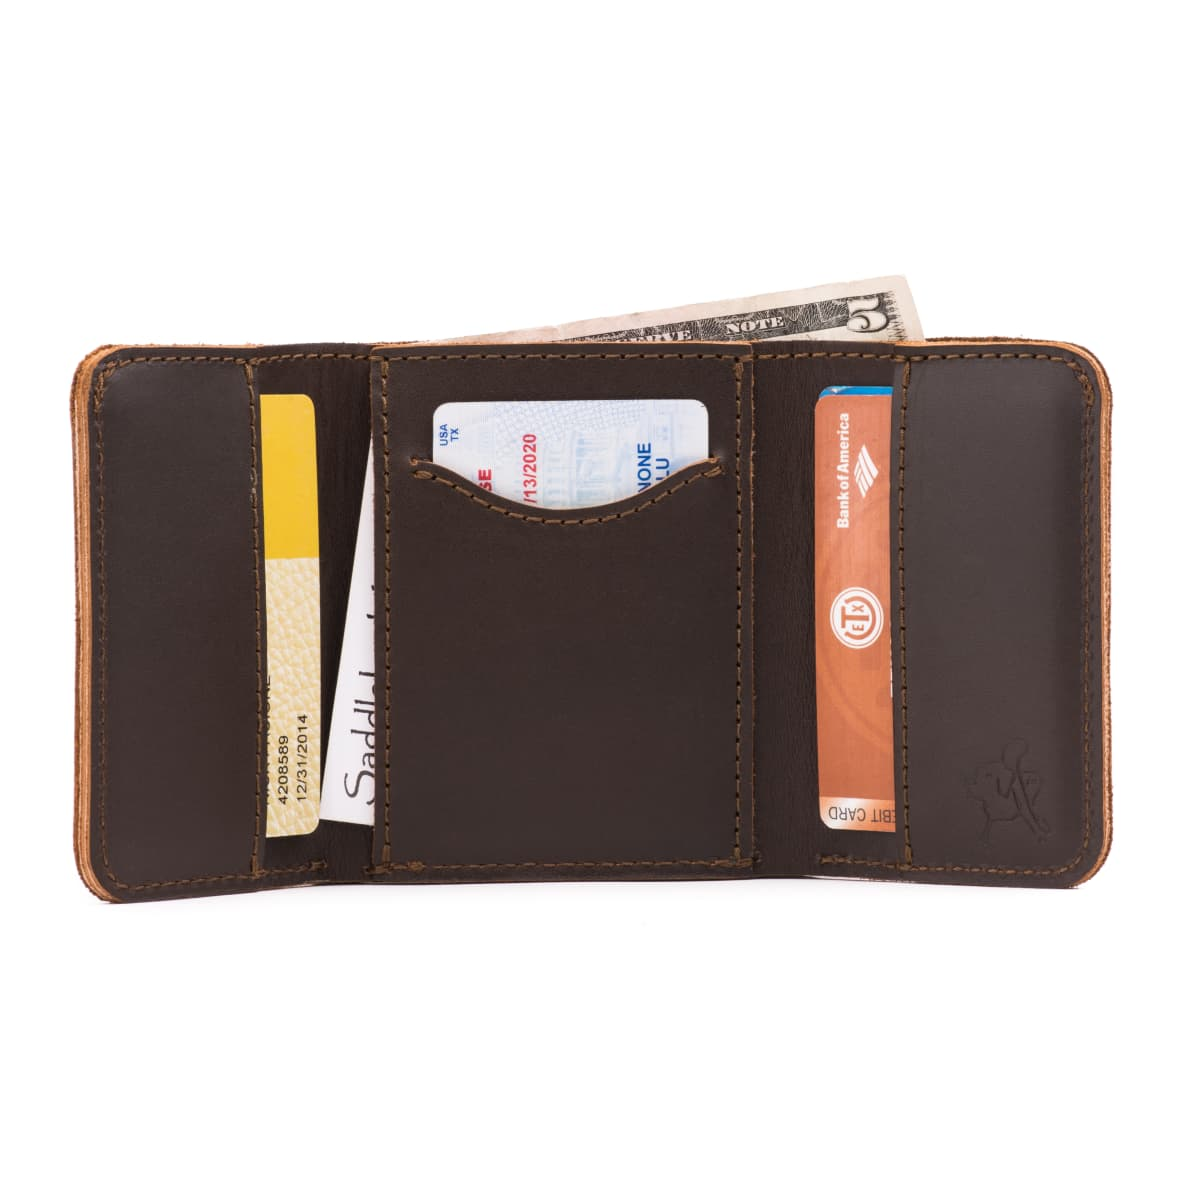 Leather Trifold Wallet - Dark Coffee Brown (25% Discount)